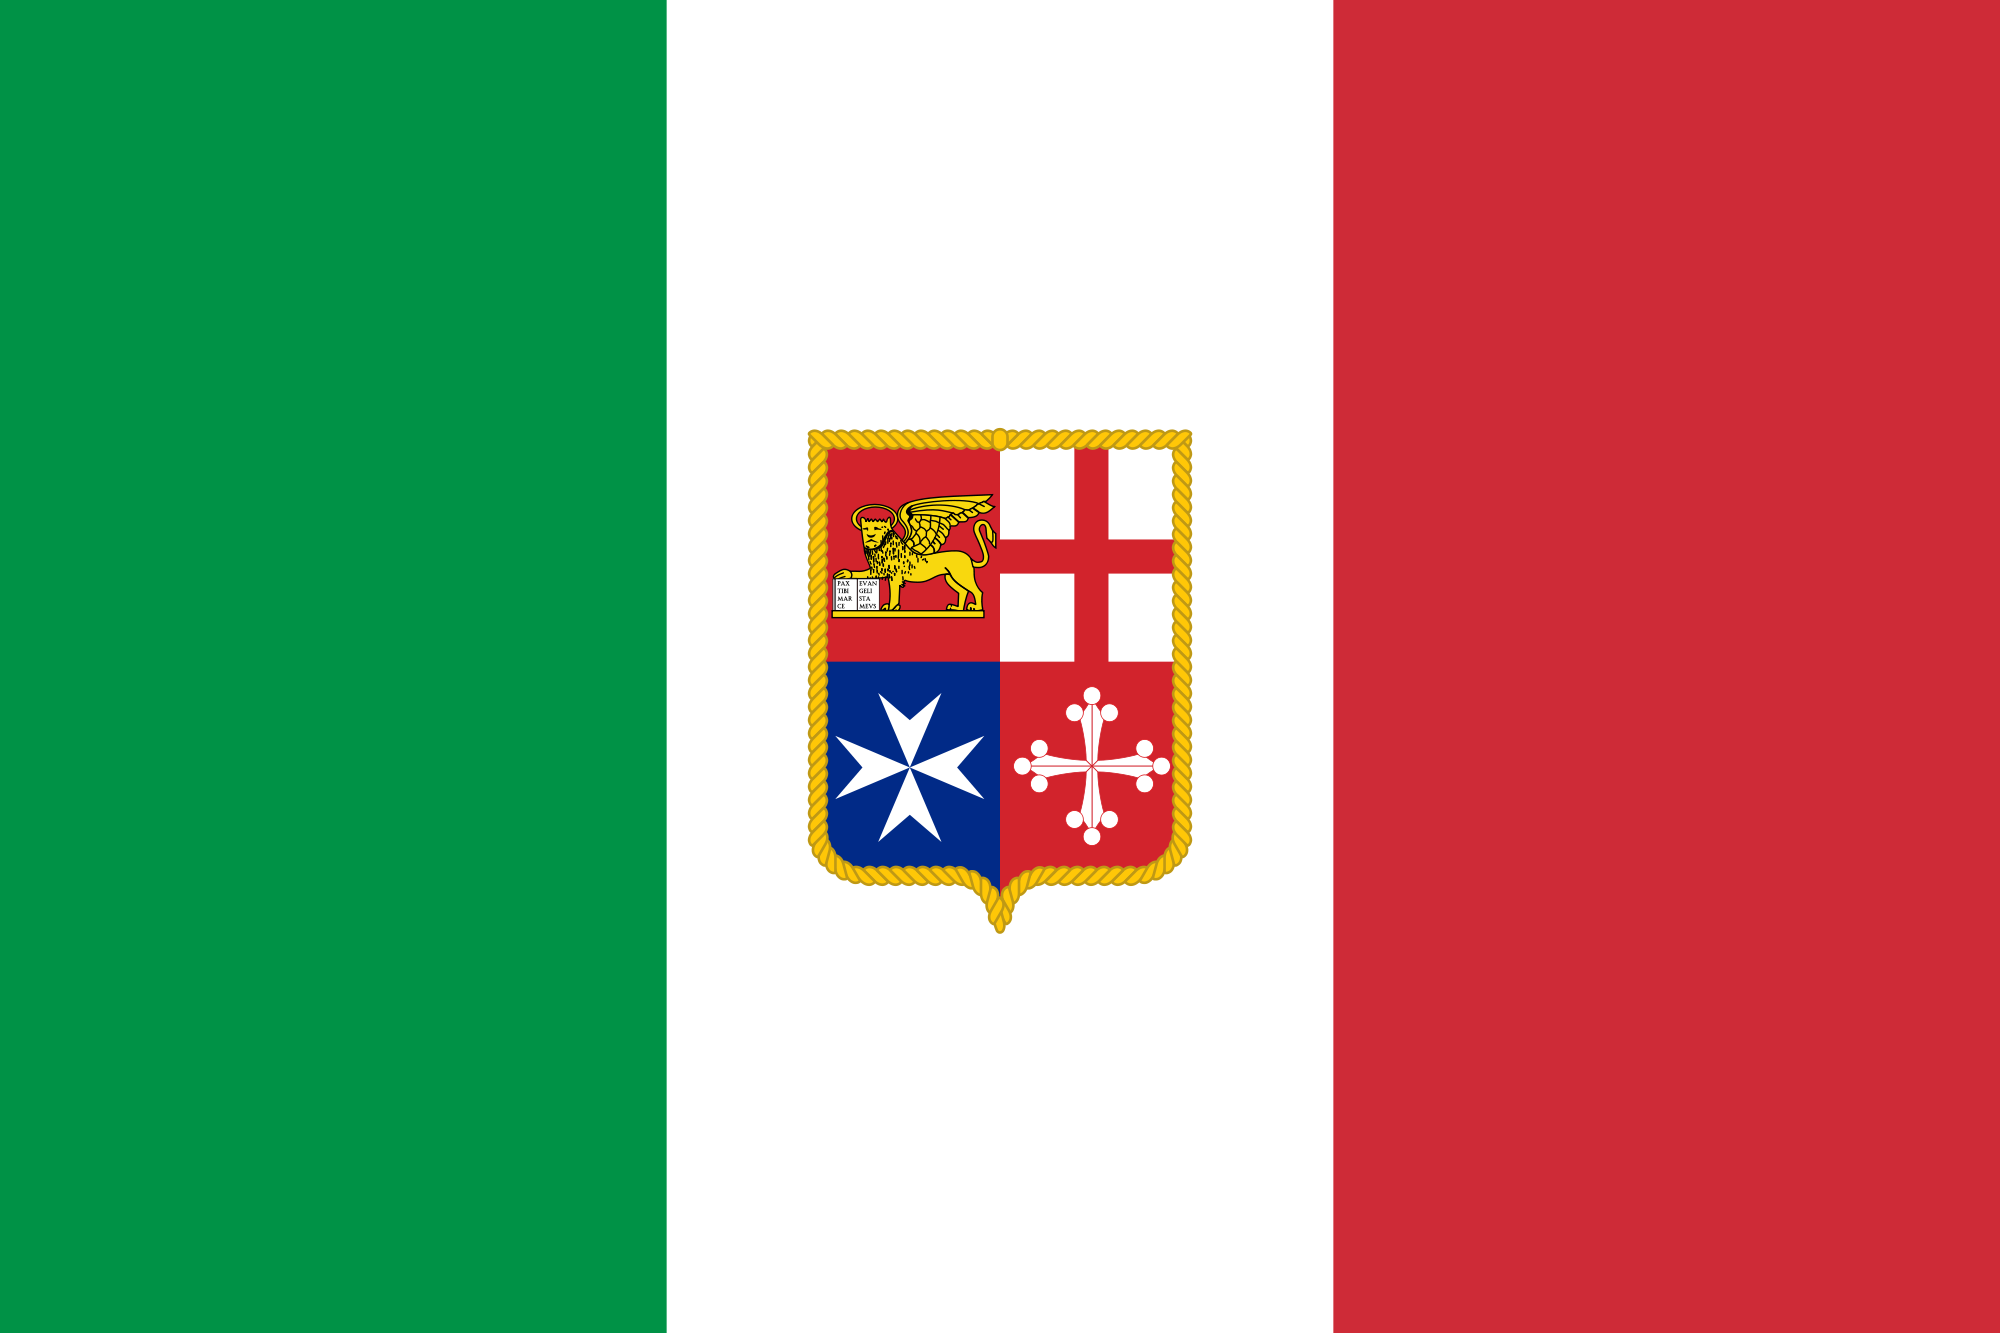 Italy (Civil ensign)